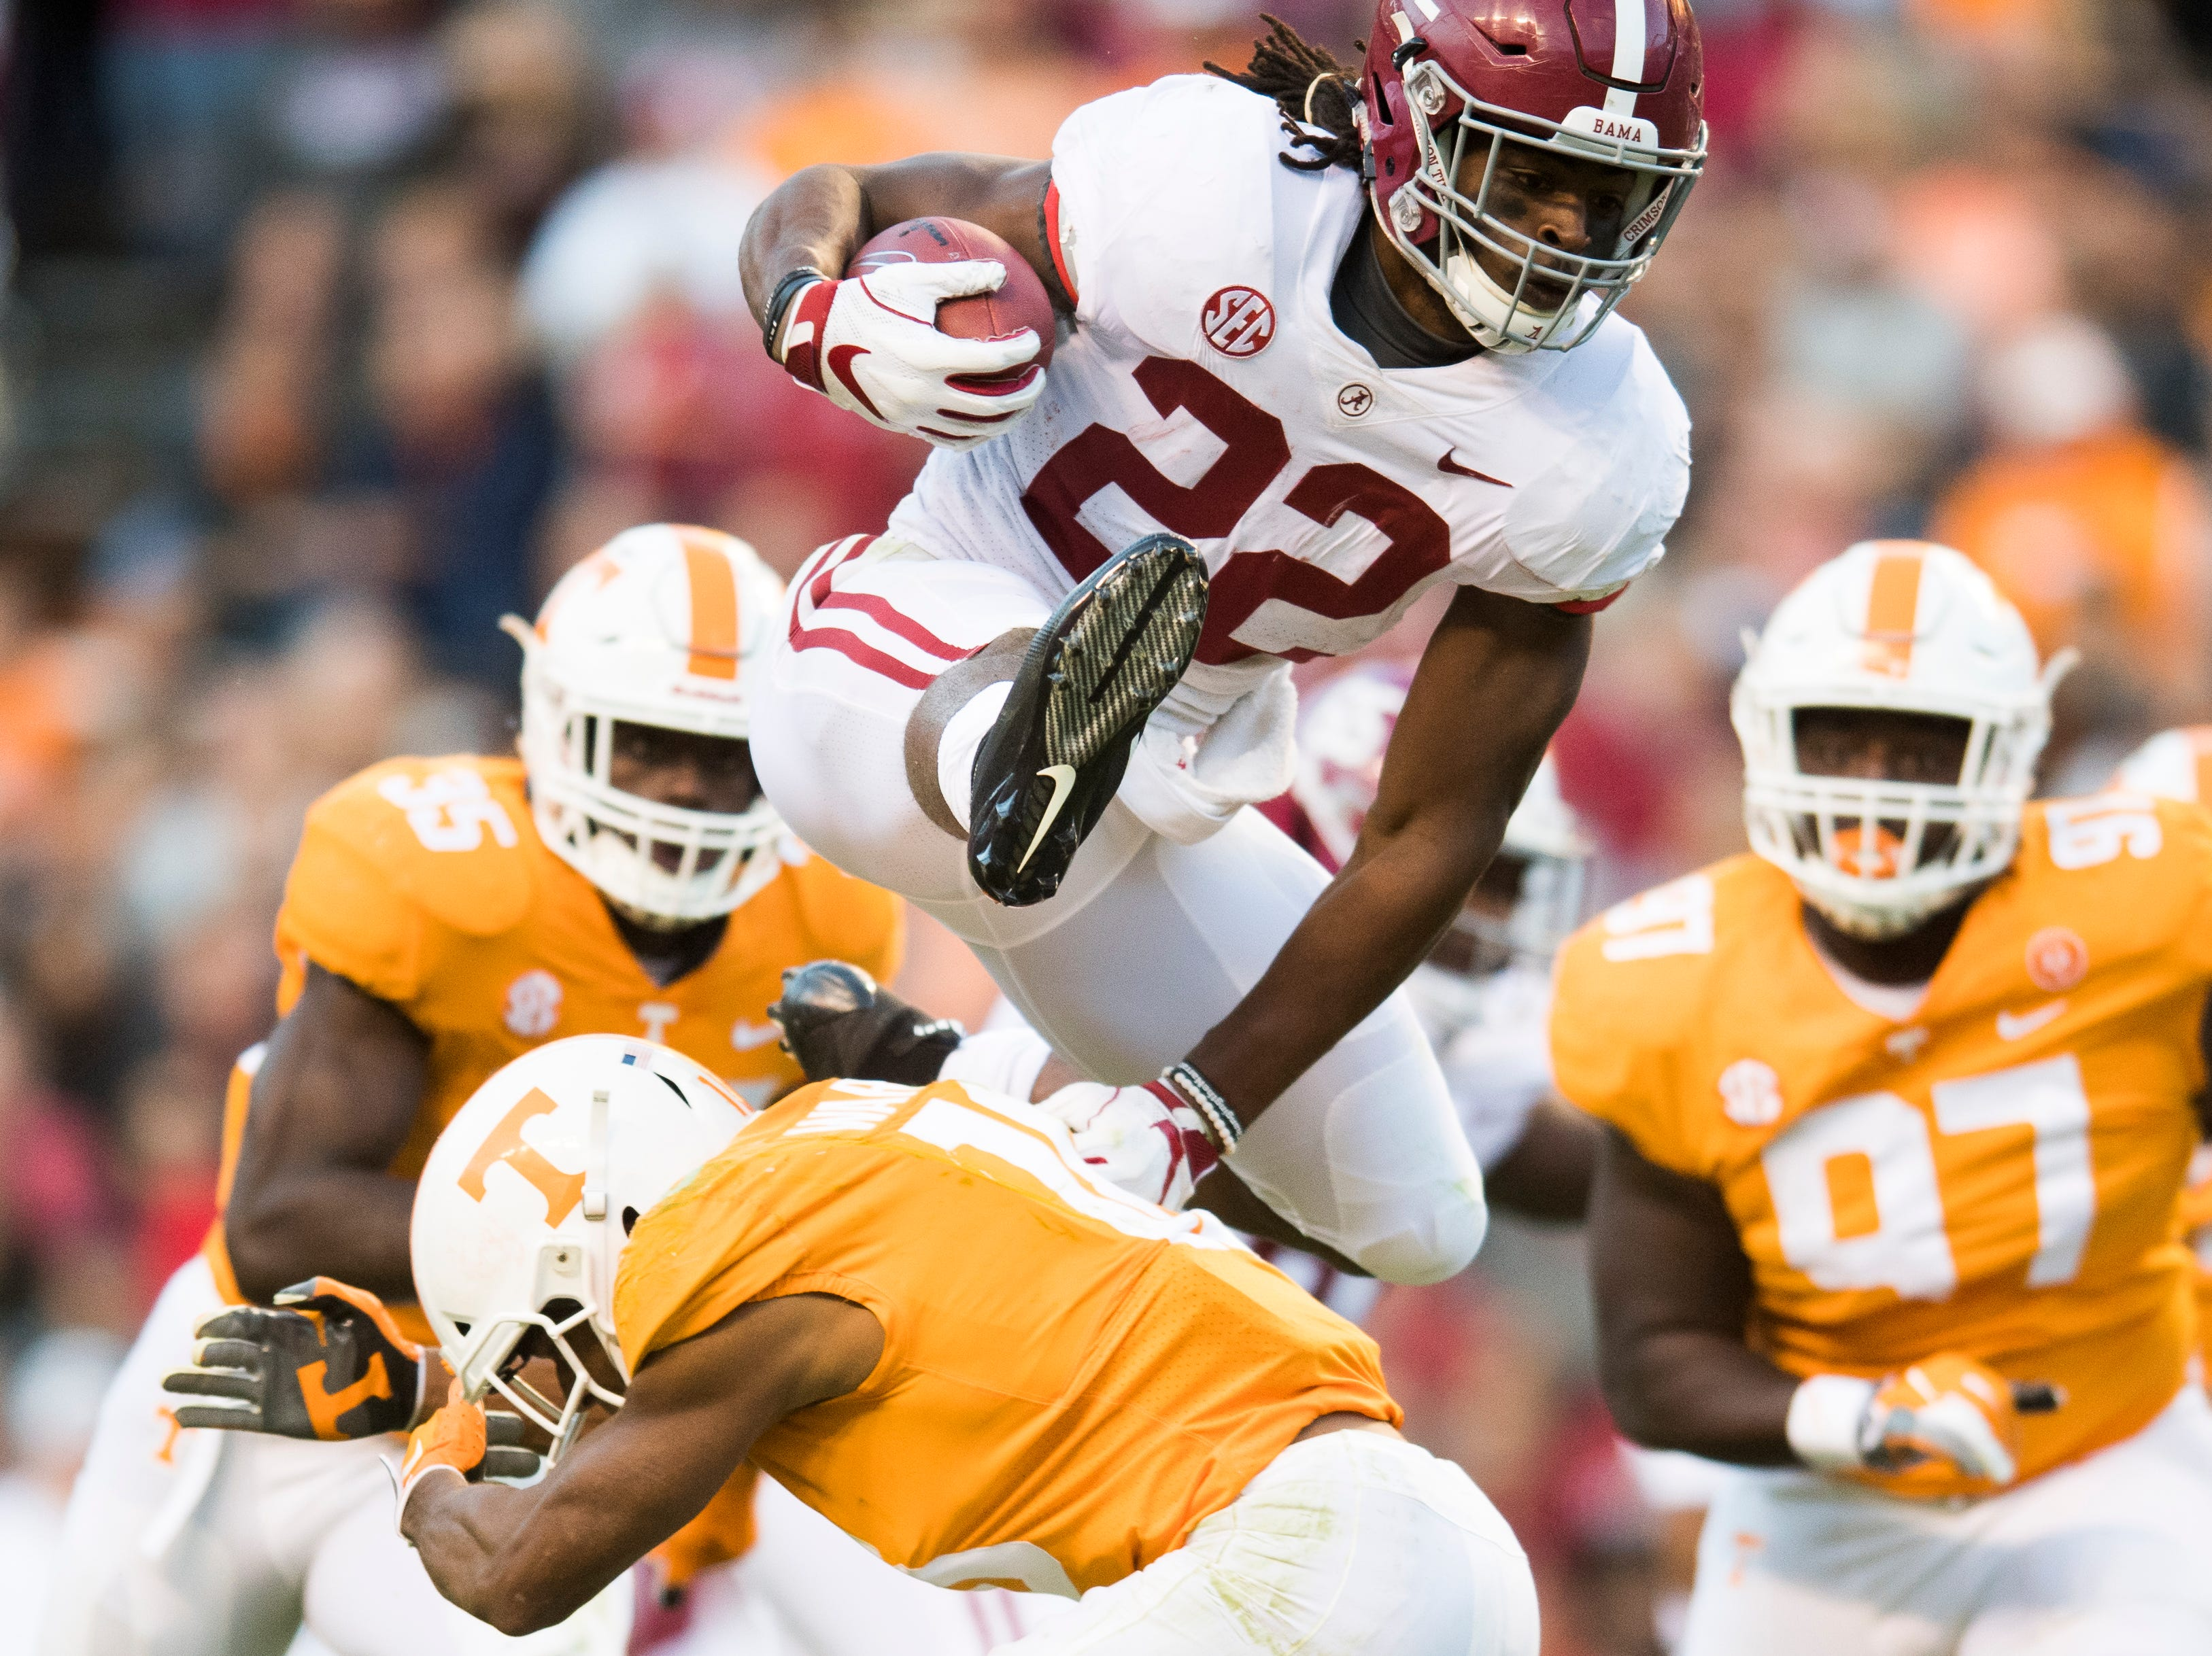 Alabama running back Najee Harris (22) leaps over Tennessee defensive back Nigel Warrior (18) during a game between Tennessee and Alabama at Neyland Stadium in Knoxville, Tennessee on Saturday, October 20, 2018.